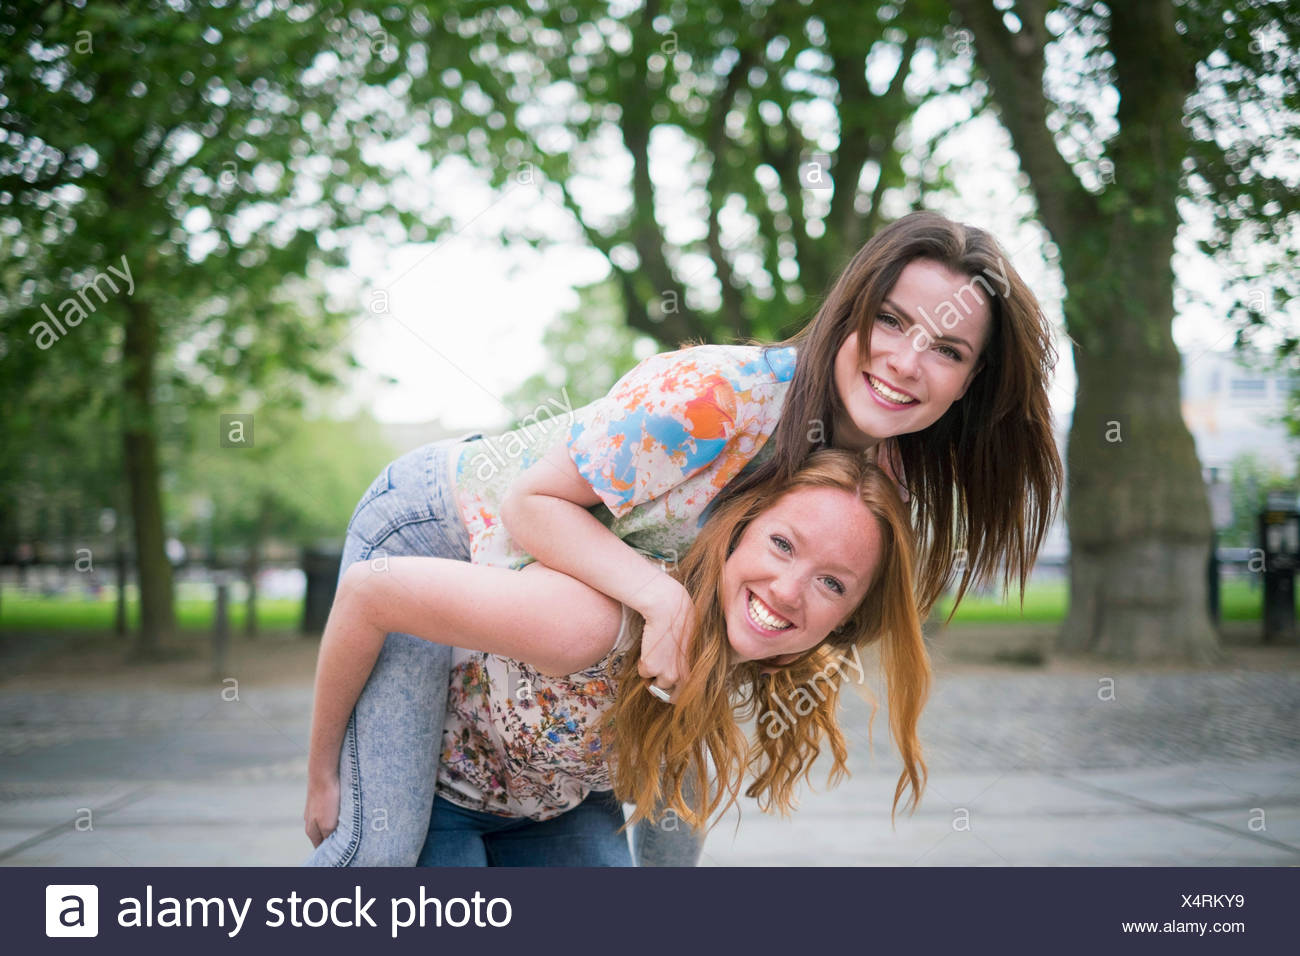 Portrait of two young female best friends giving piggy back in park - Stock Image